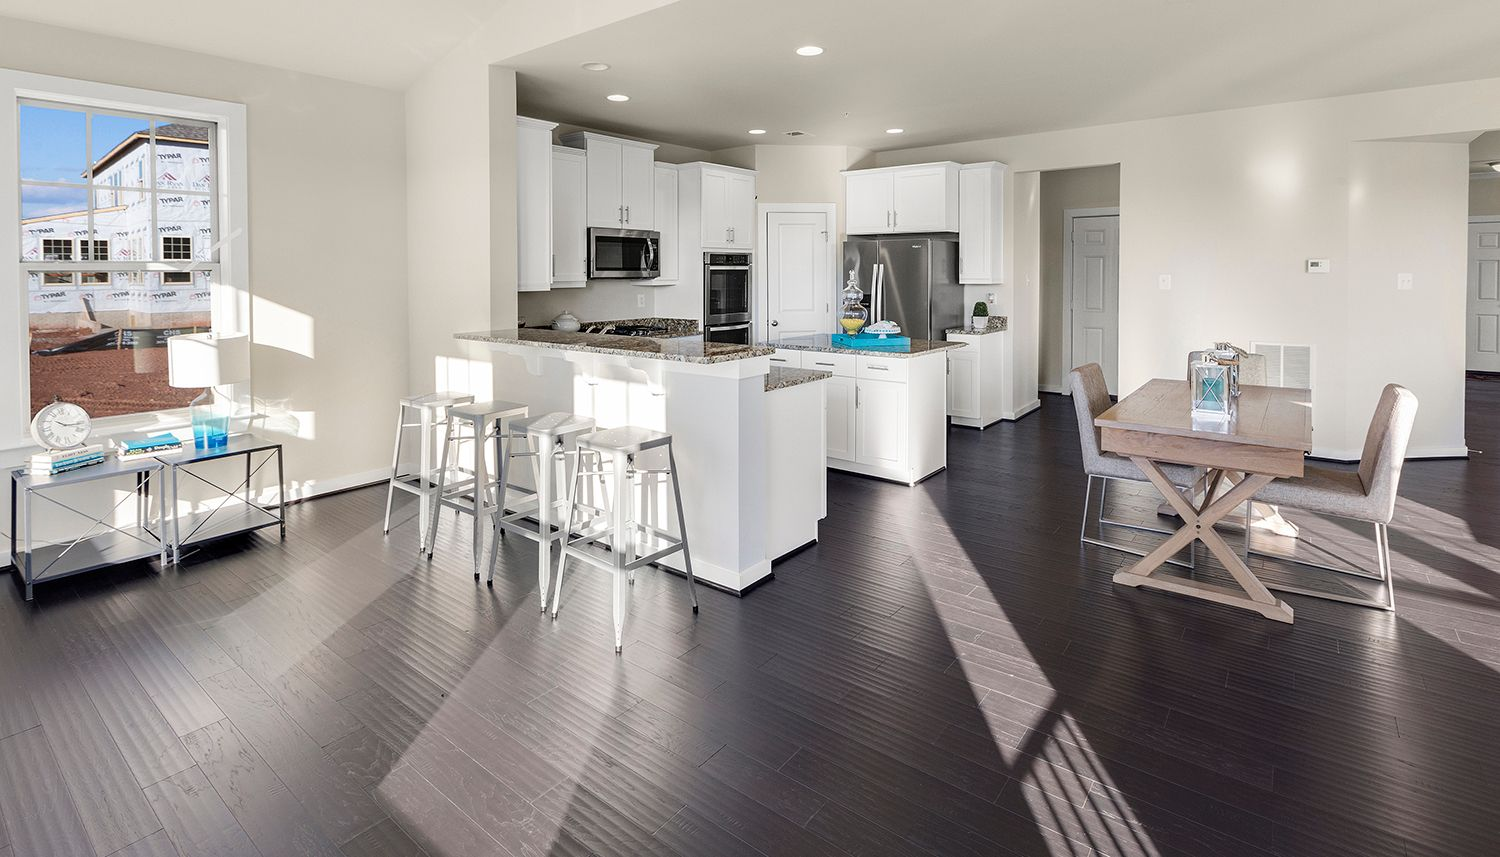 Kitchen featured in the Cumberland II By Dan Ryan Builders in Hagerstown, MD